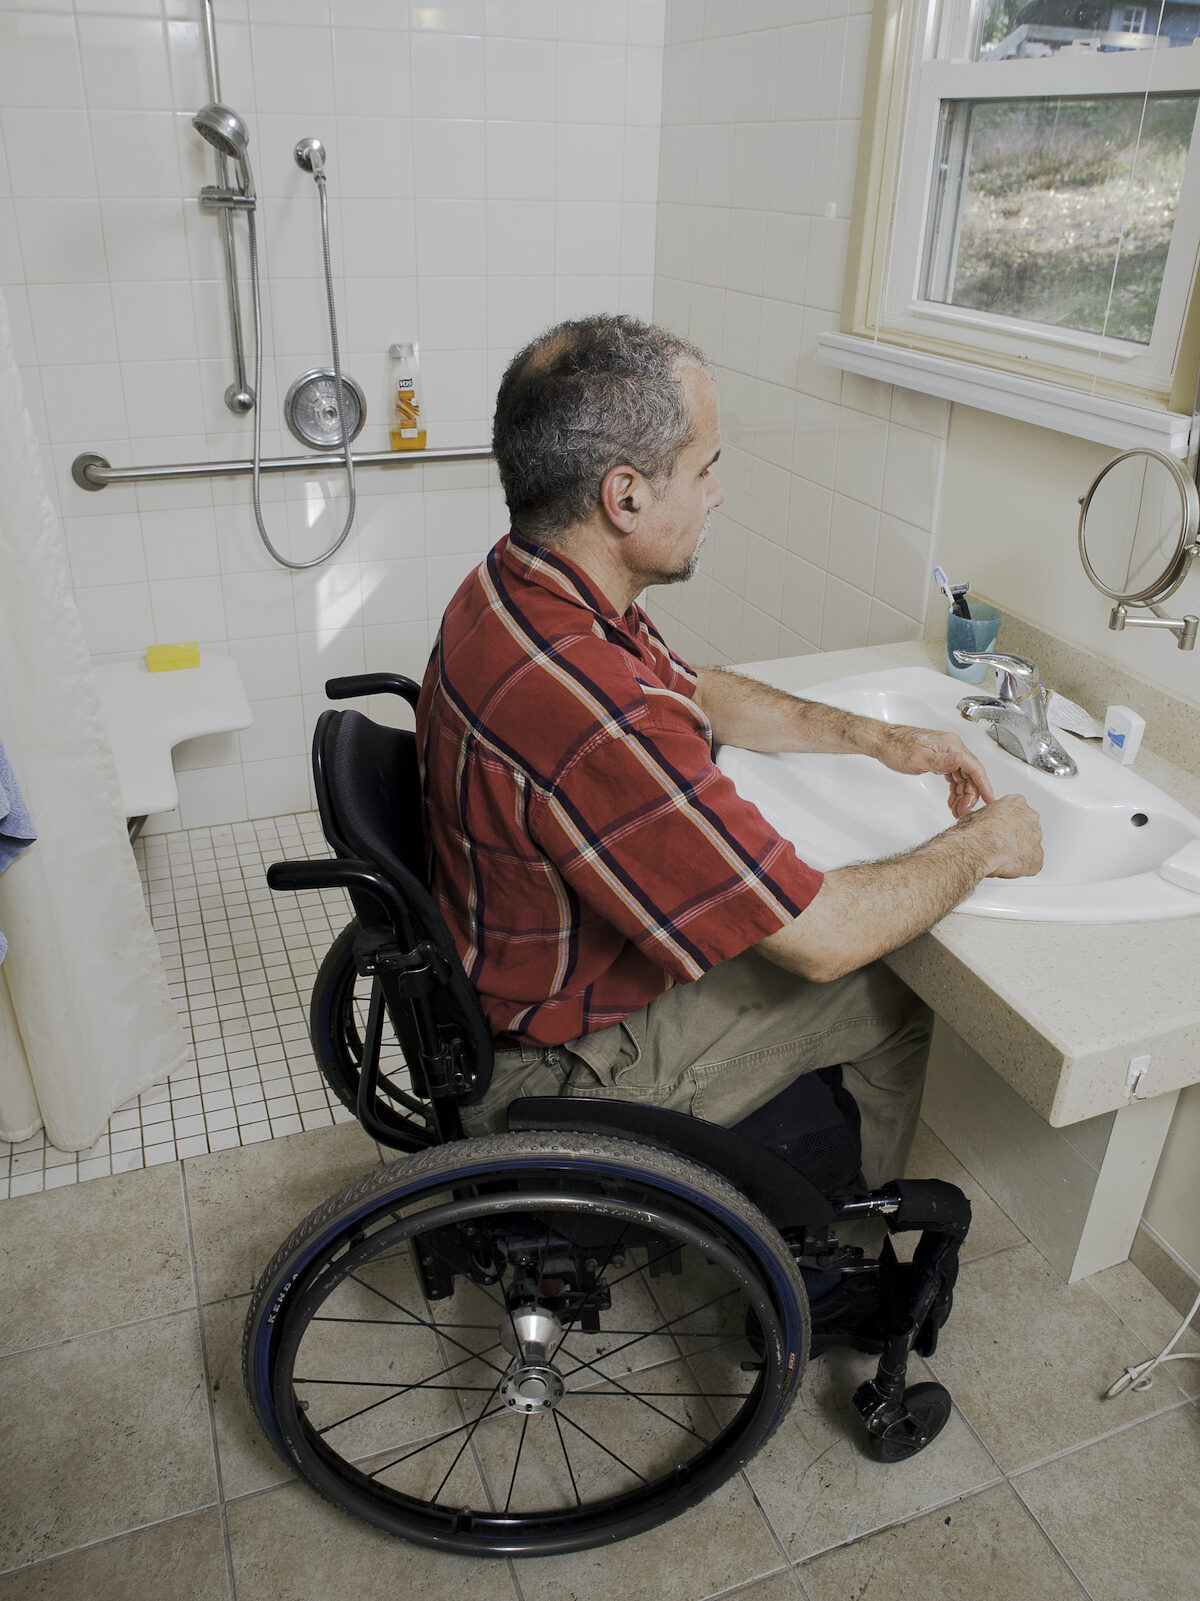 A man using a manual wheelchair washes his hands at an accessible sink next to a roll-in shower.